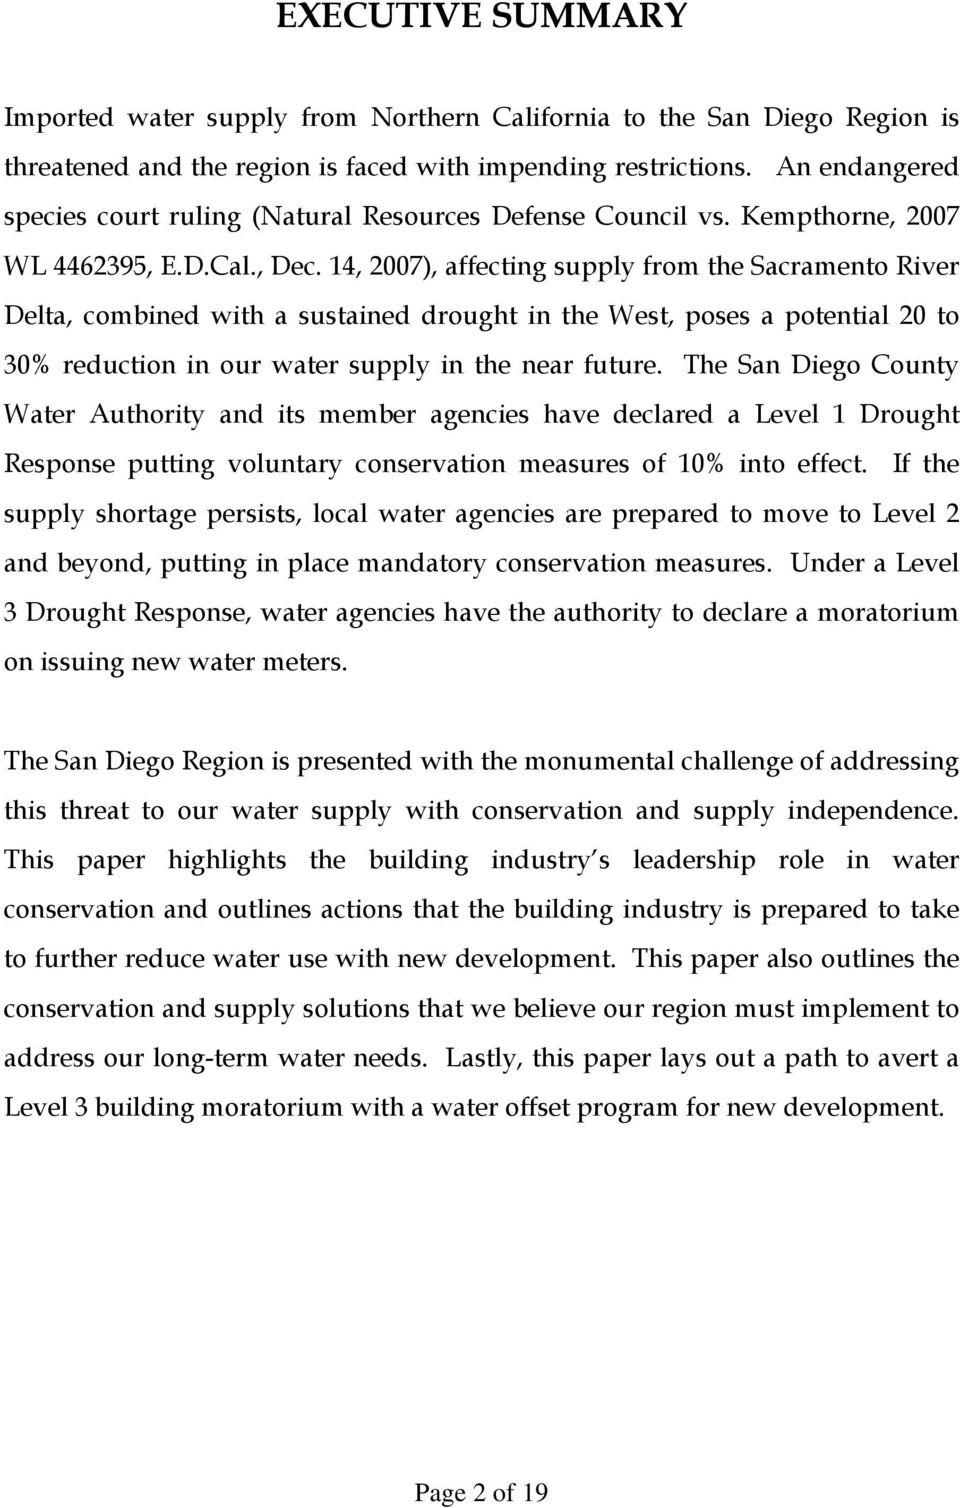 14, 2007), affecting supply from the Sacramento River Delta, combined with a sustained drought in the West, poses a potential 20 to 30% reduction in our water supply in the near future.